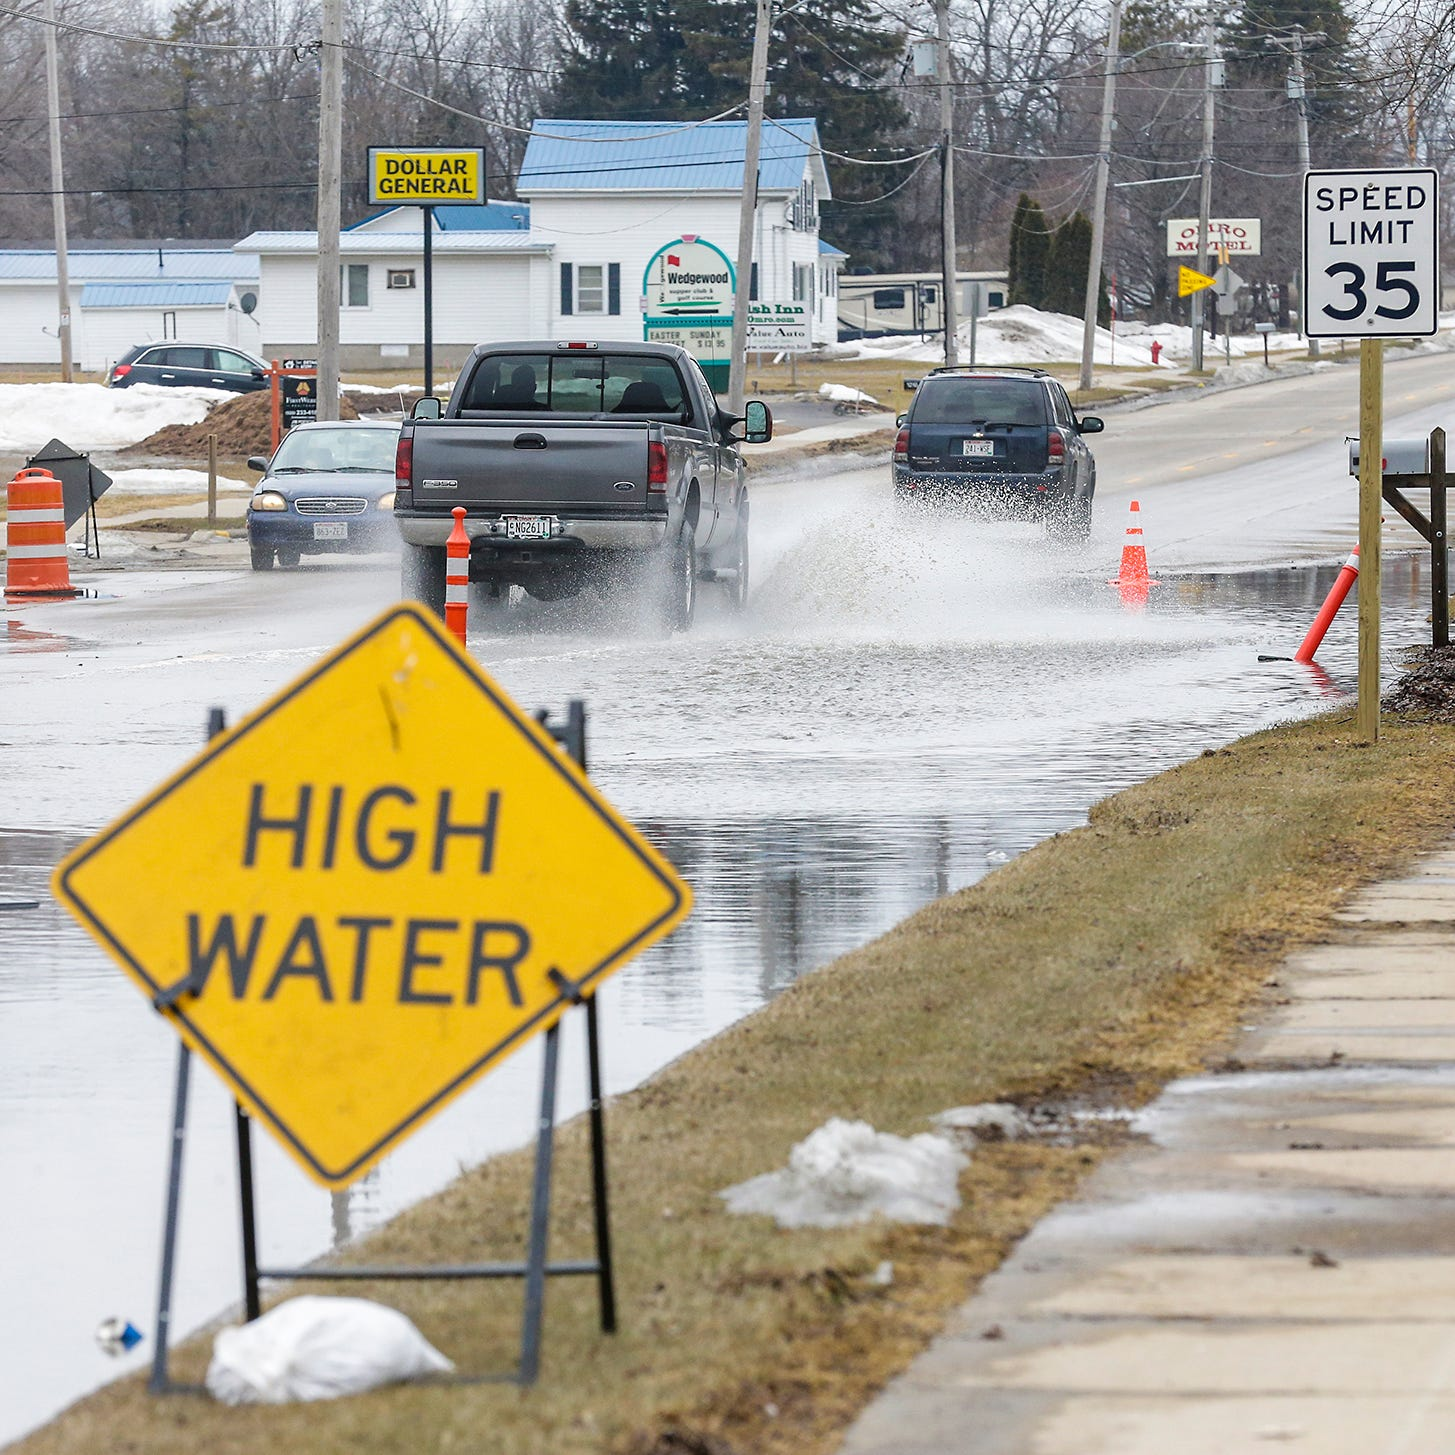 Flood warning issued as flood concerns continue into the weekend